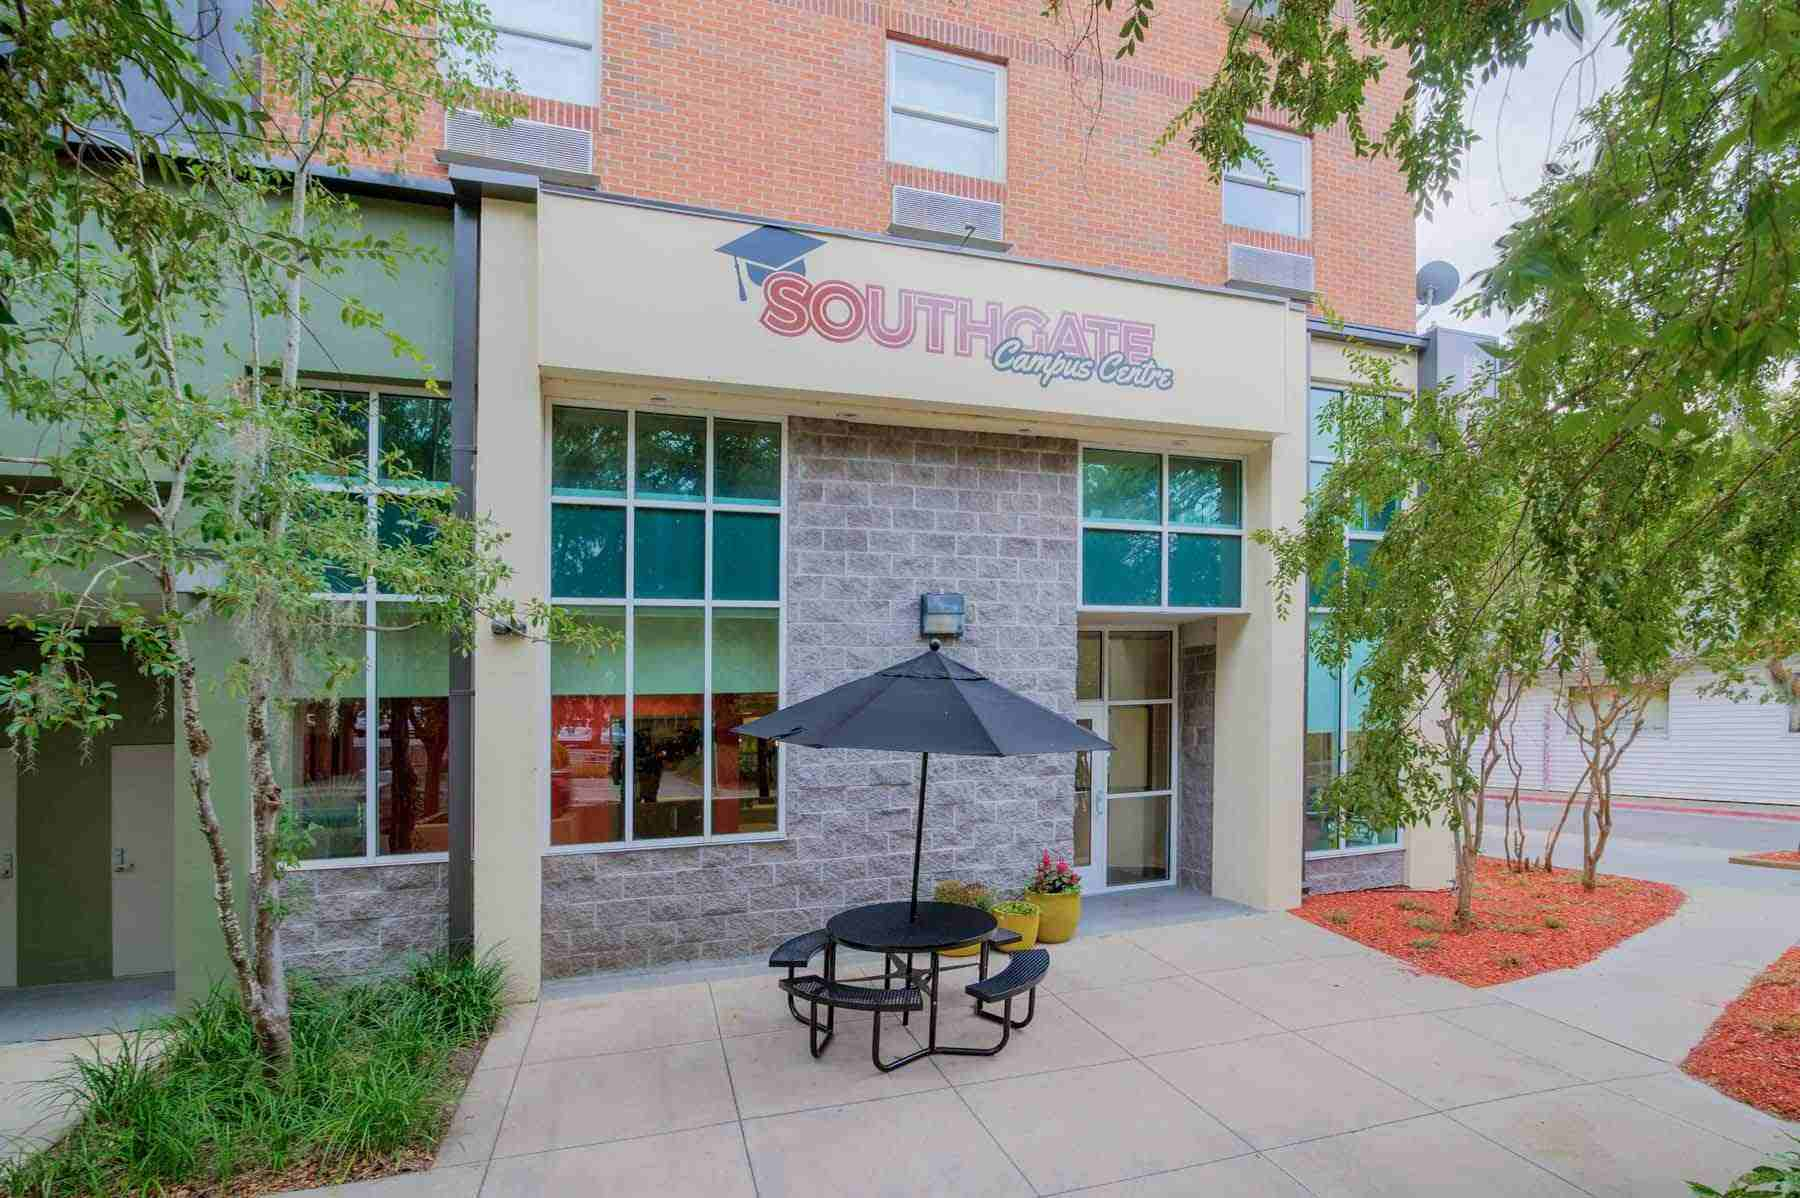 SouthGate-Campus-Centre-Tallahassee-FL-Exterior-Unilodgers